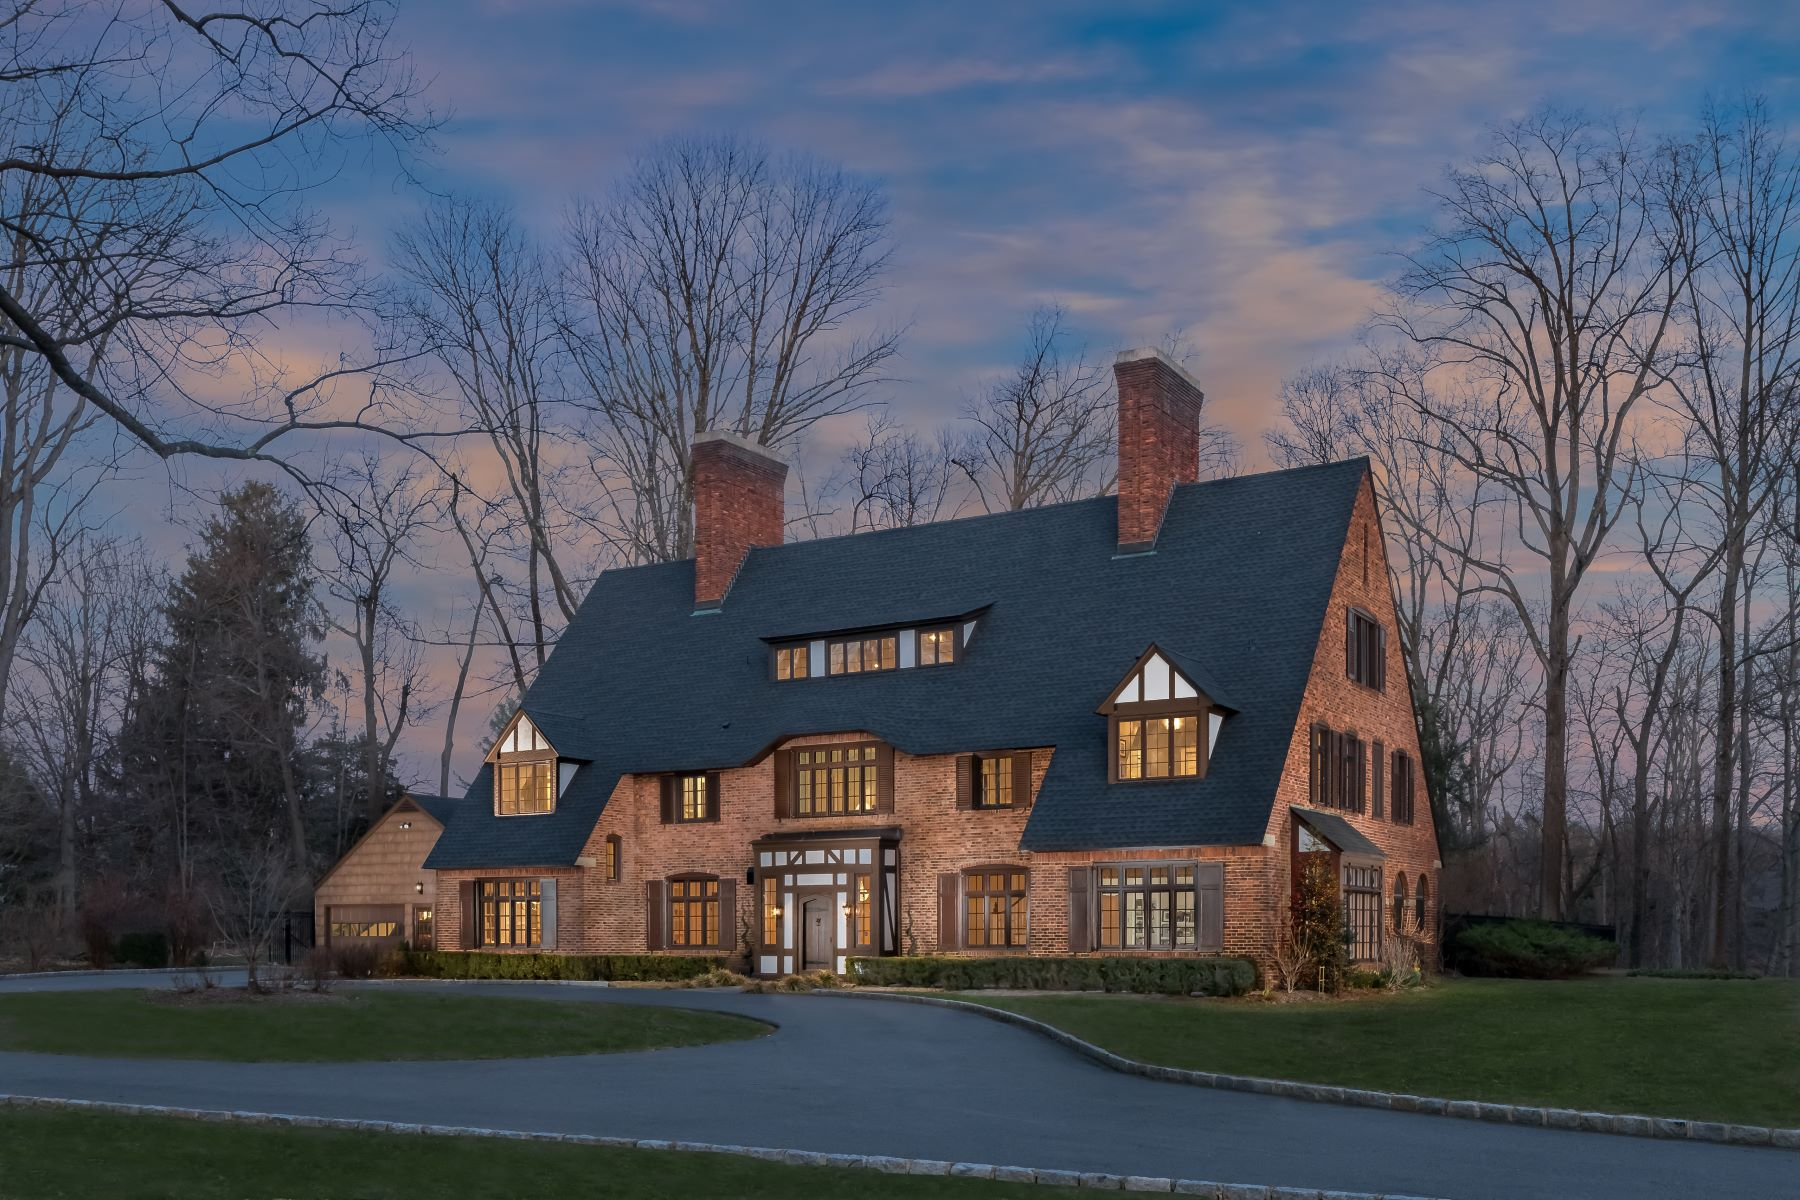 Single Family Homes for Sale at Ridgewood Hill 15 Fox Hollow Road, Morris Township, New Jersey 07960 United States